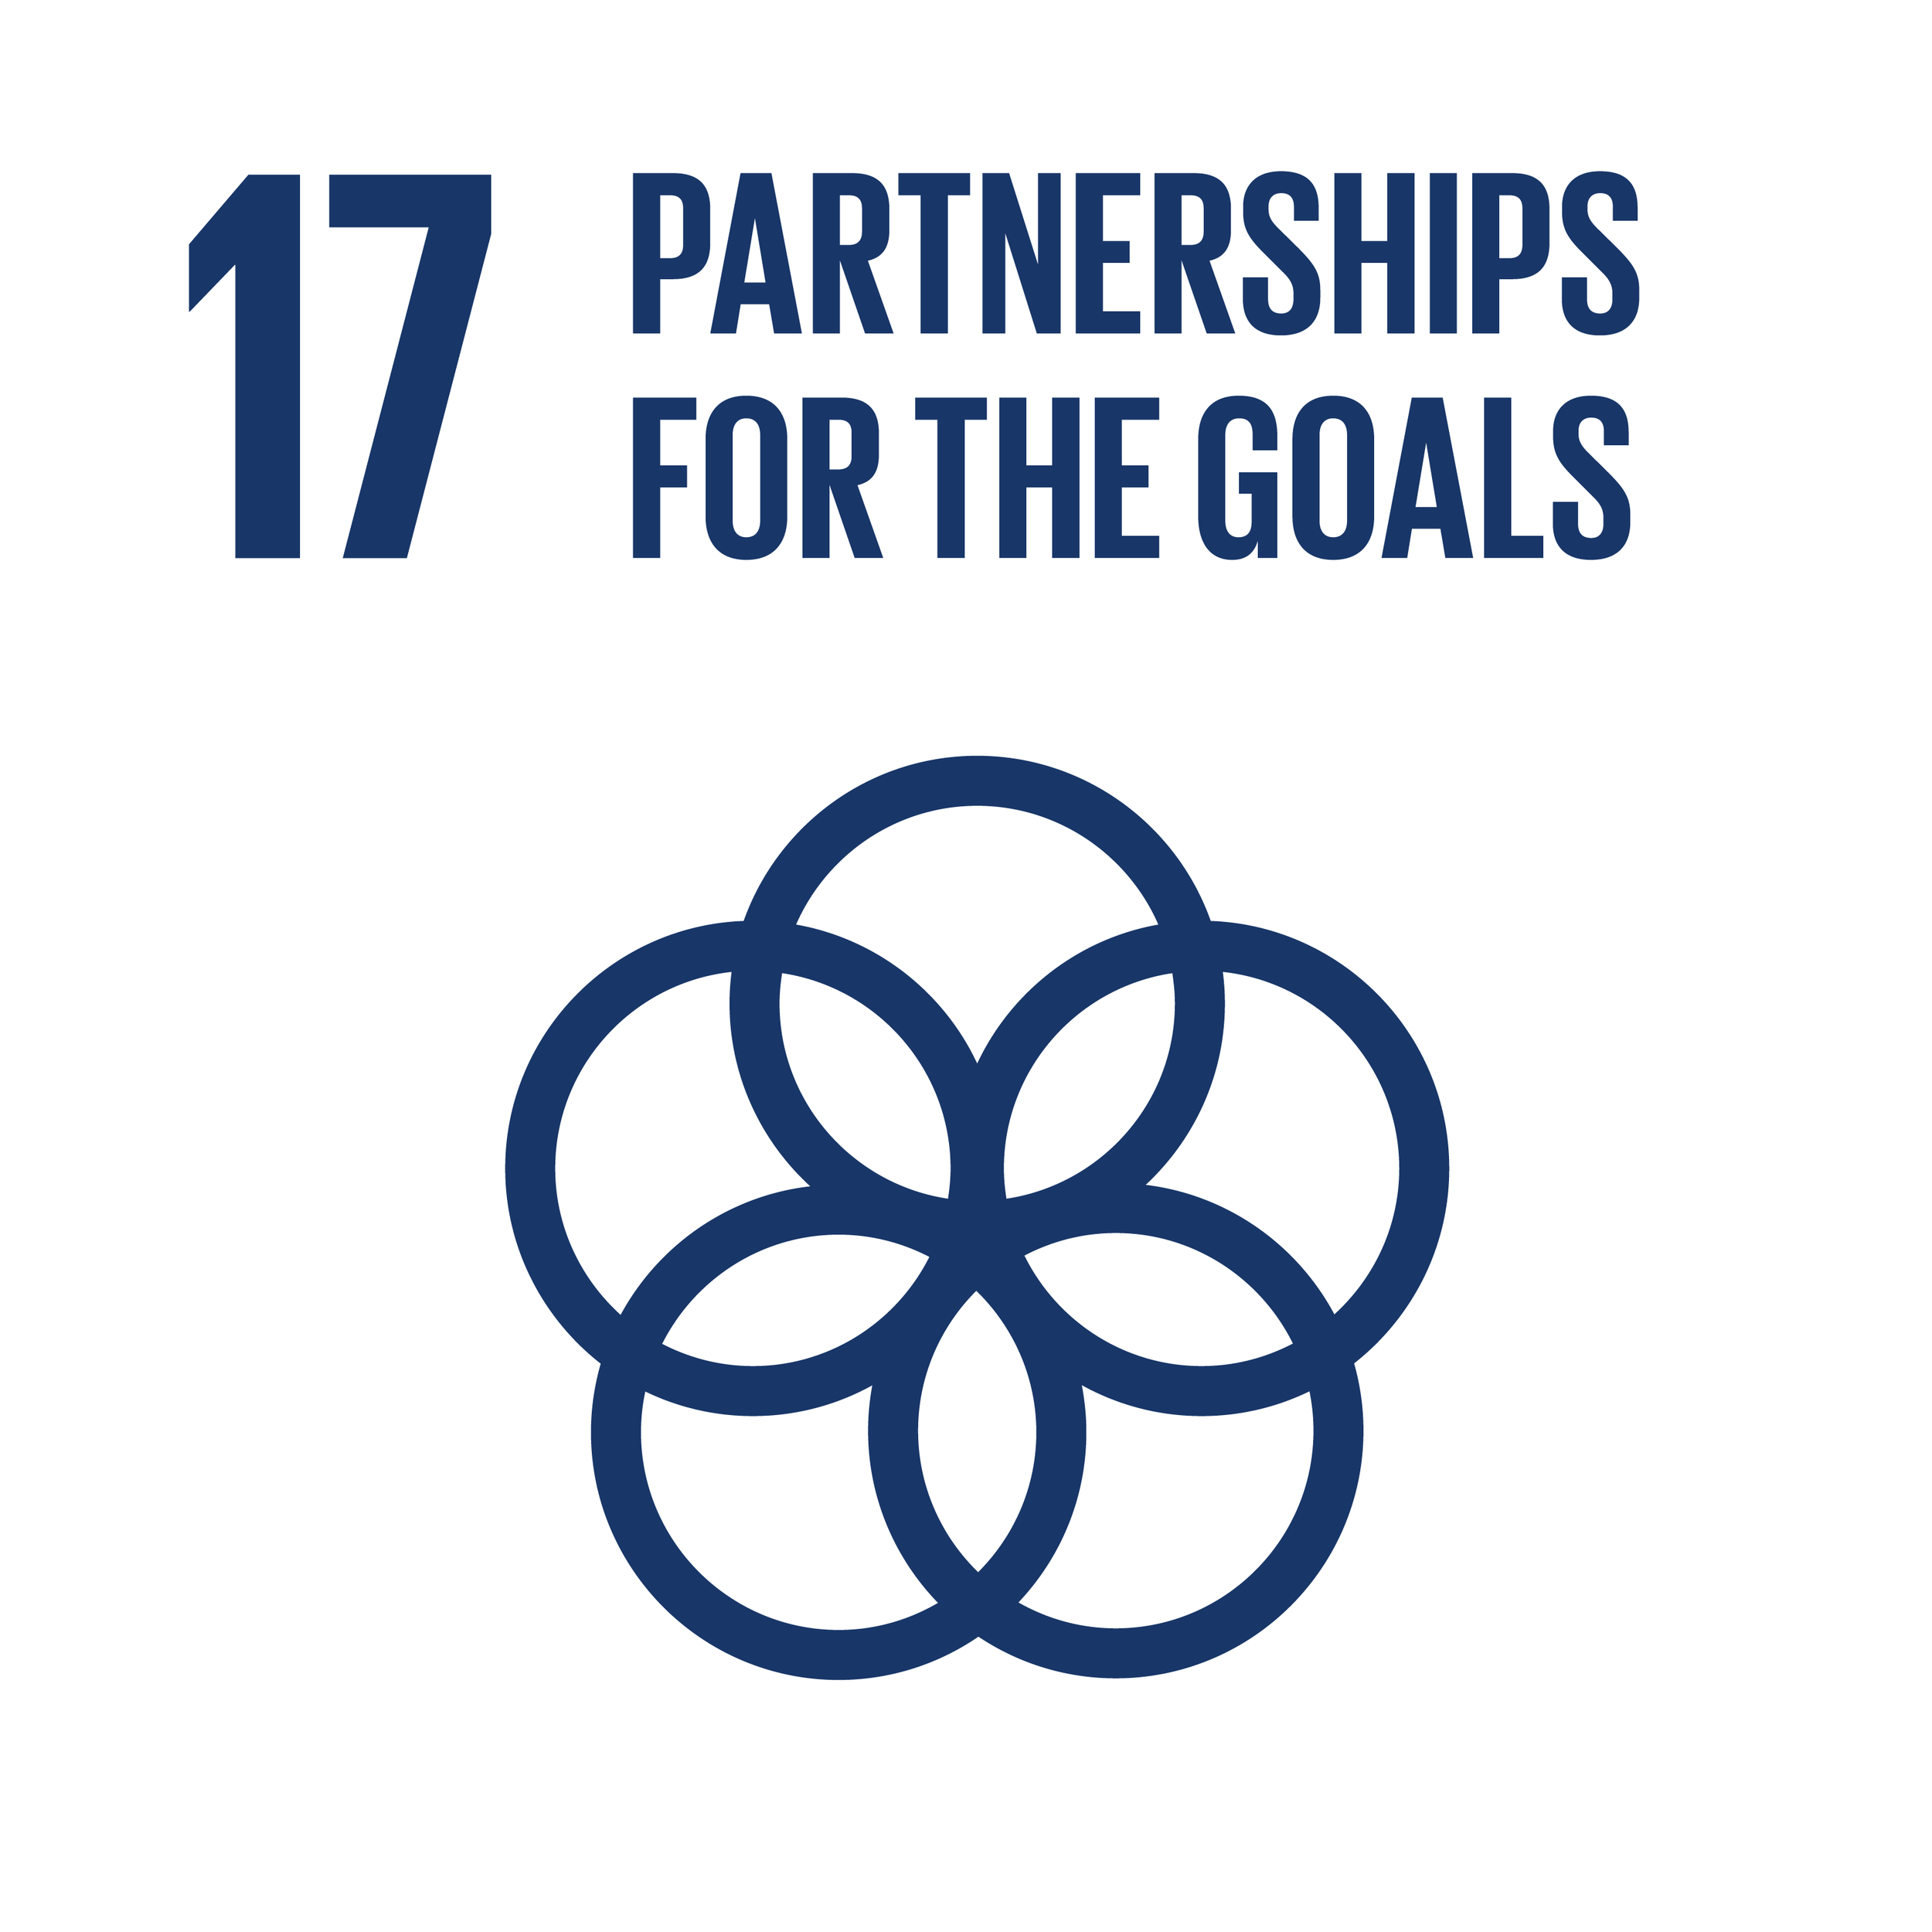 E_INVERTED SDG goals_icons-individual-RGB-17.png